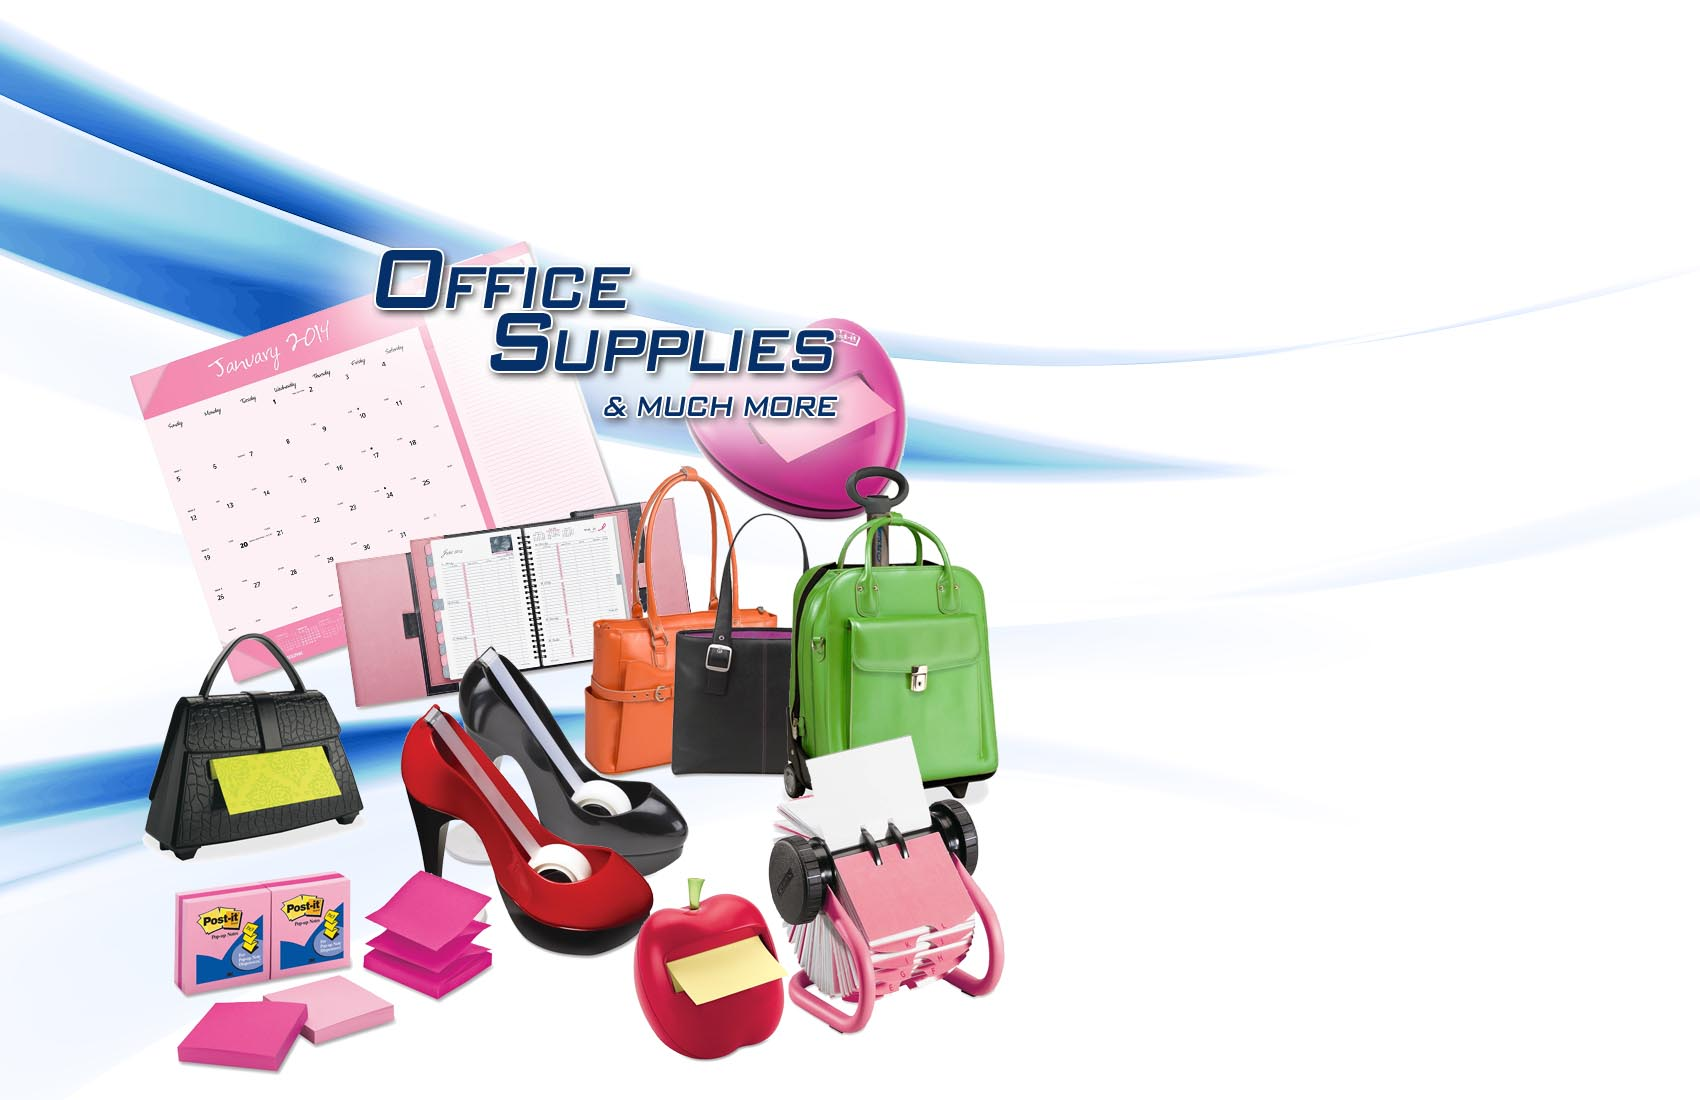 XPress Business Products 7170 W 43rd St Ste 250a Houston